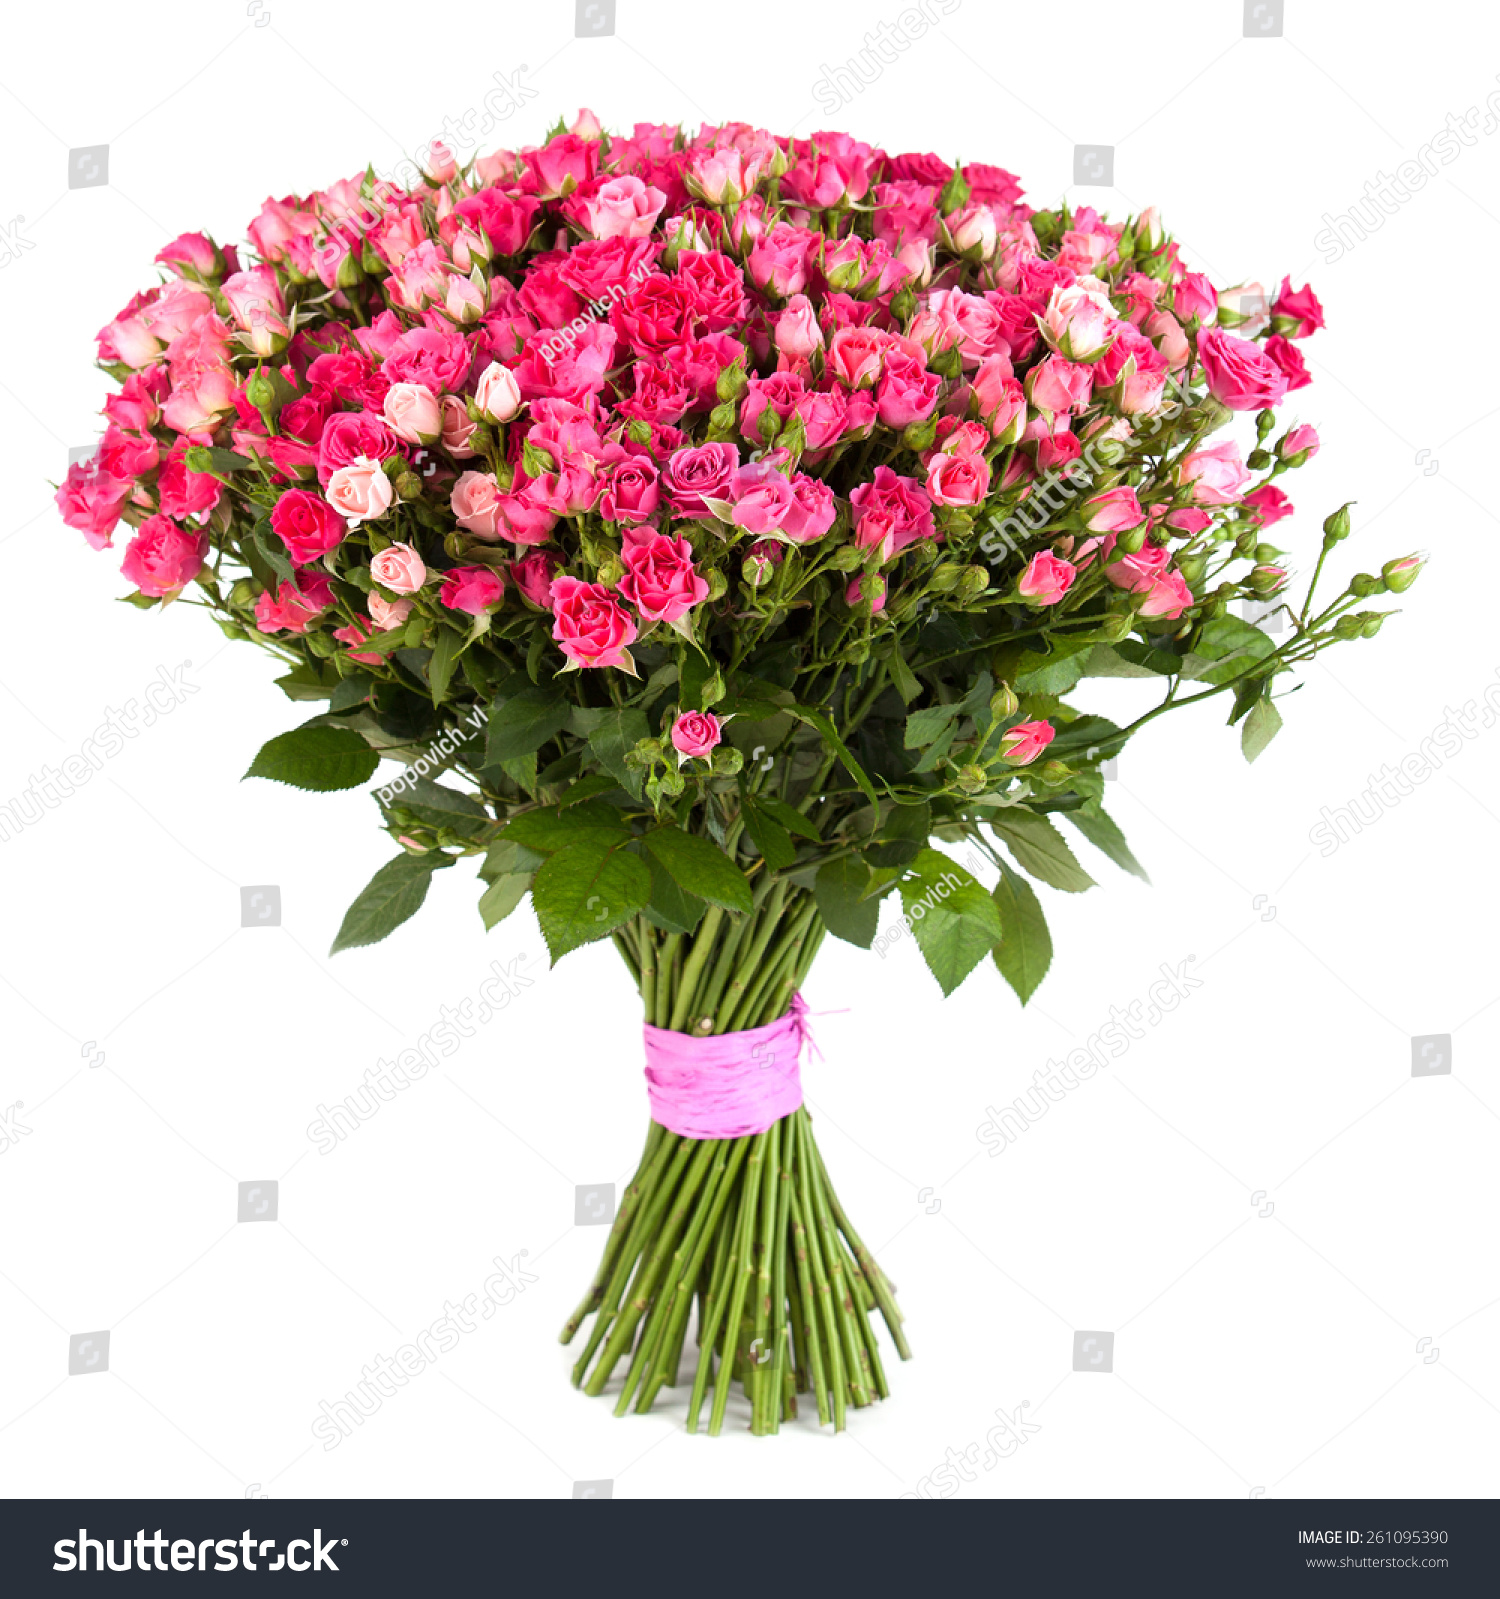 Big flower bouquet pink roses isolated stock photo edit now big flower bouquet from pink roses isolated on white background closeup izmirmasajfo